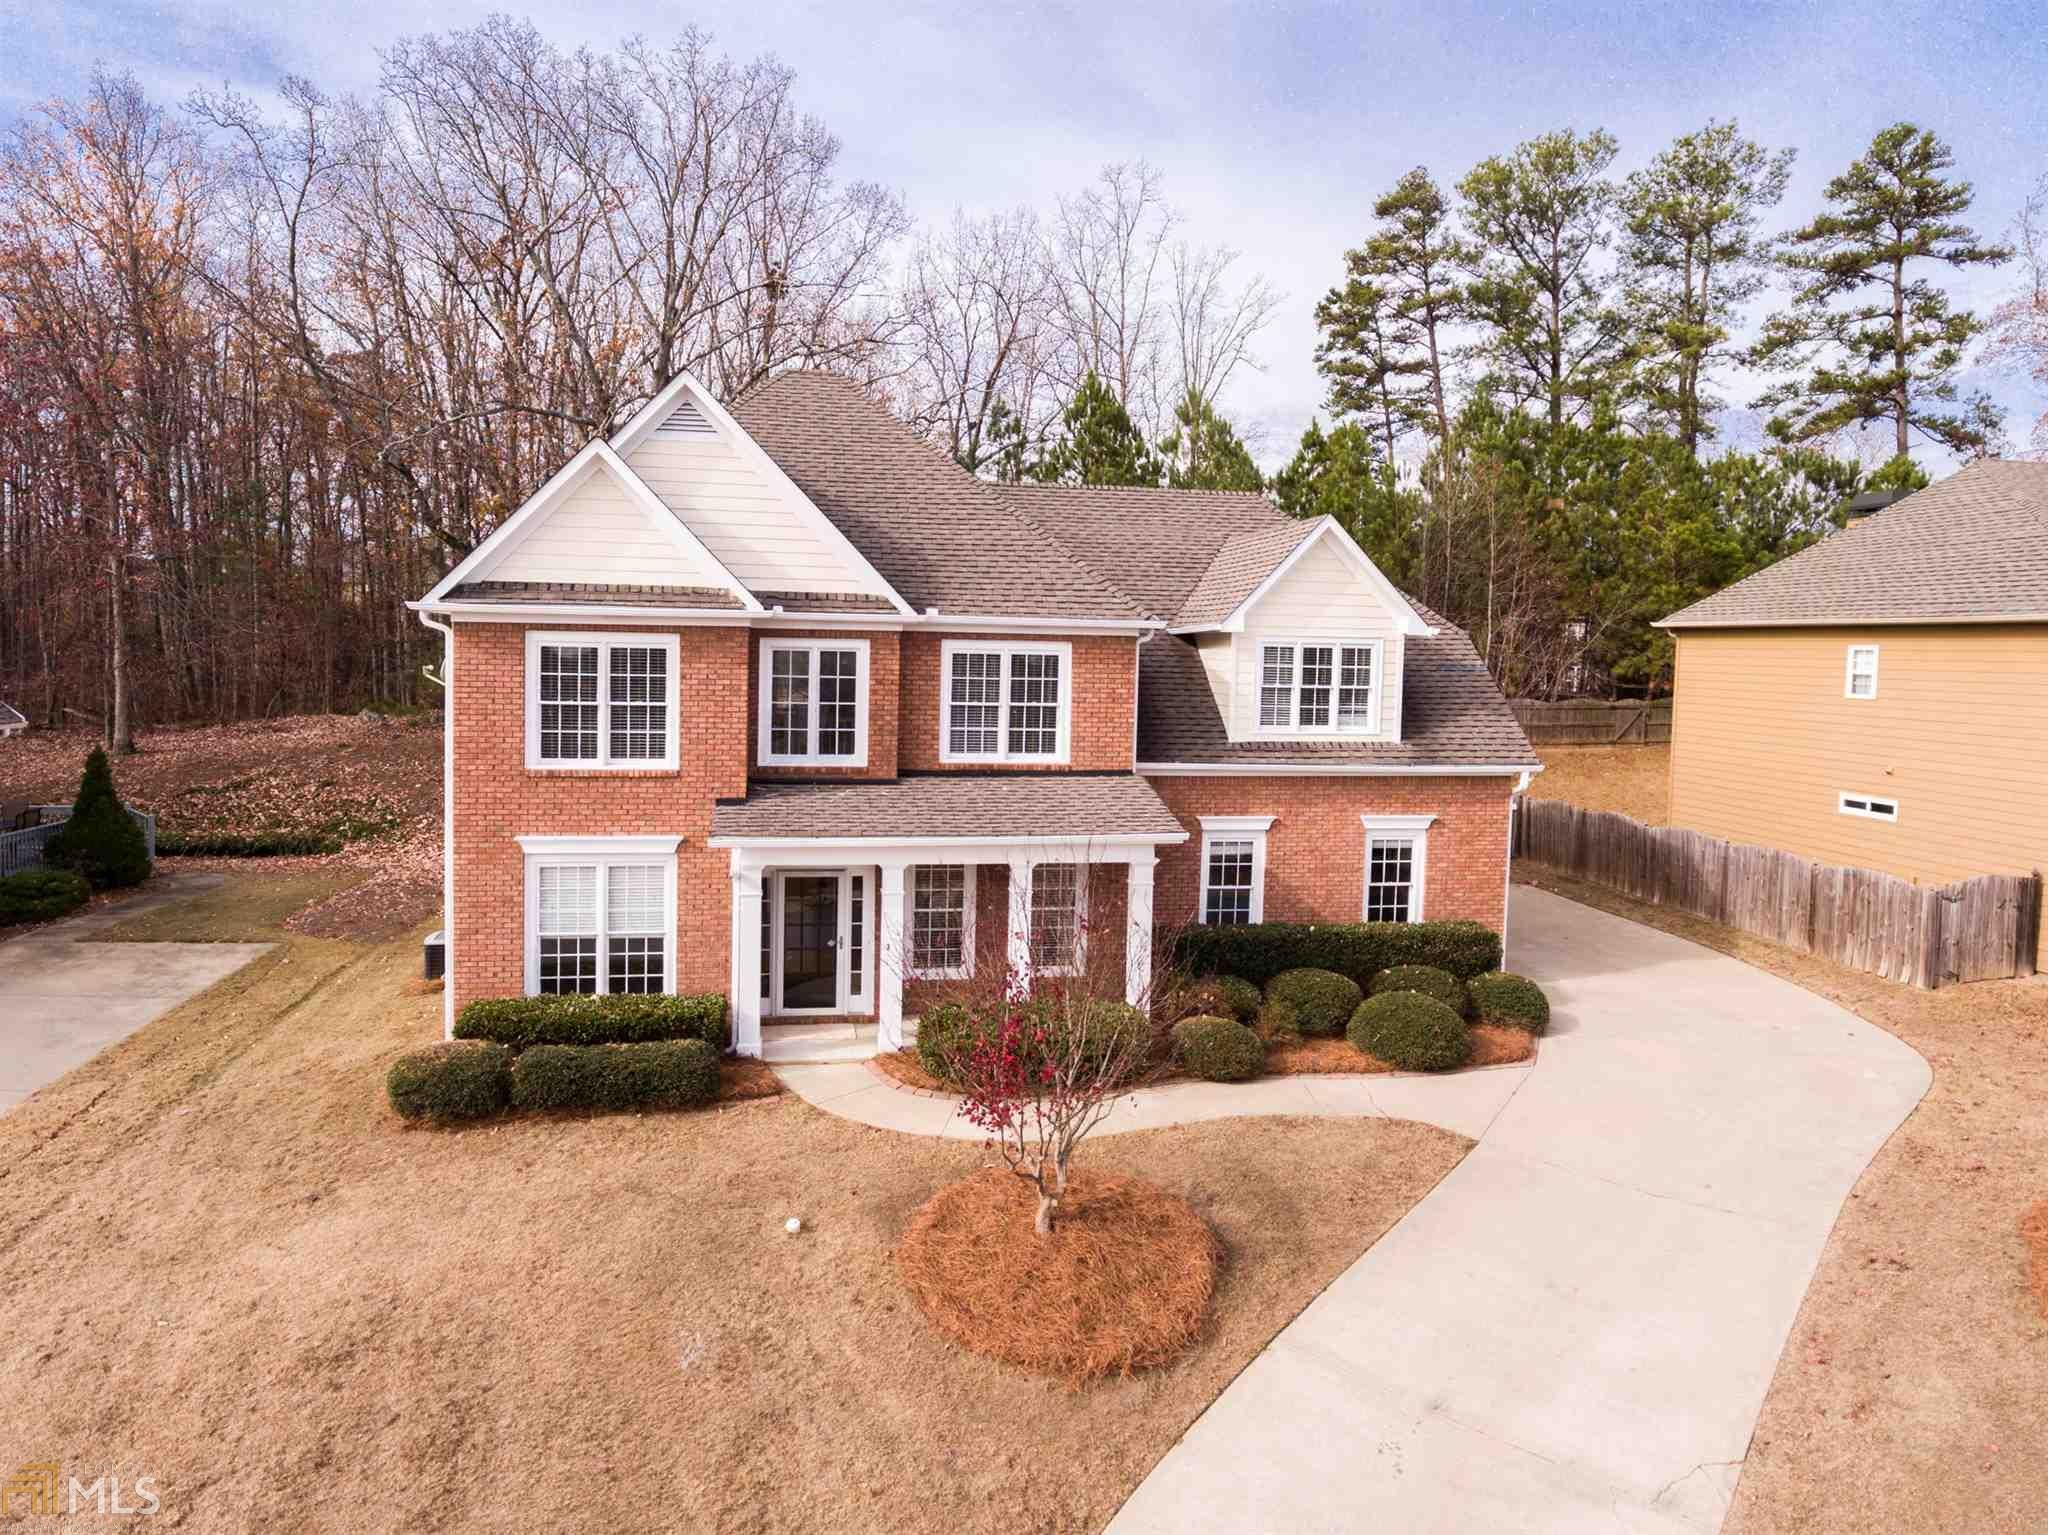 Sandy Branch Dr For Sale Buford GA